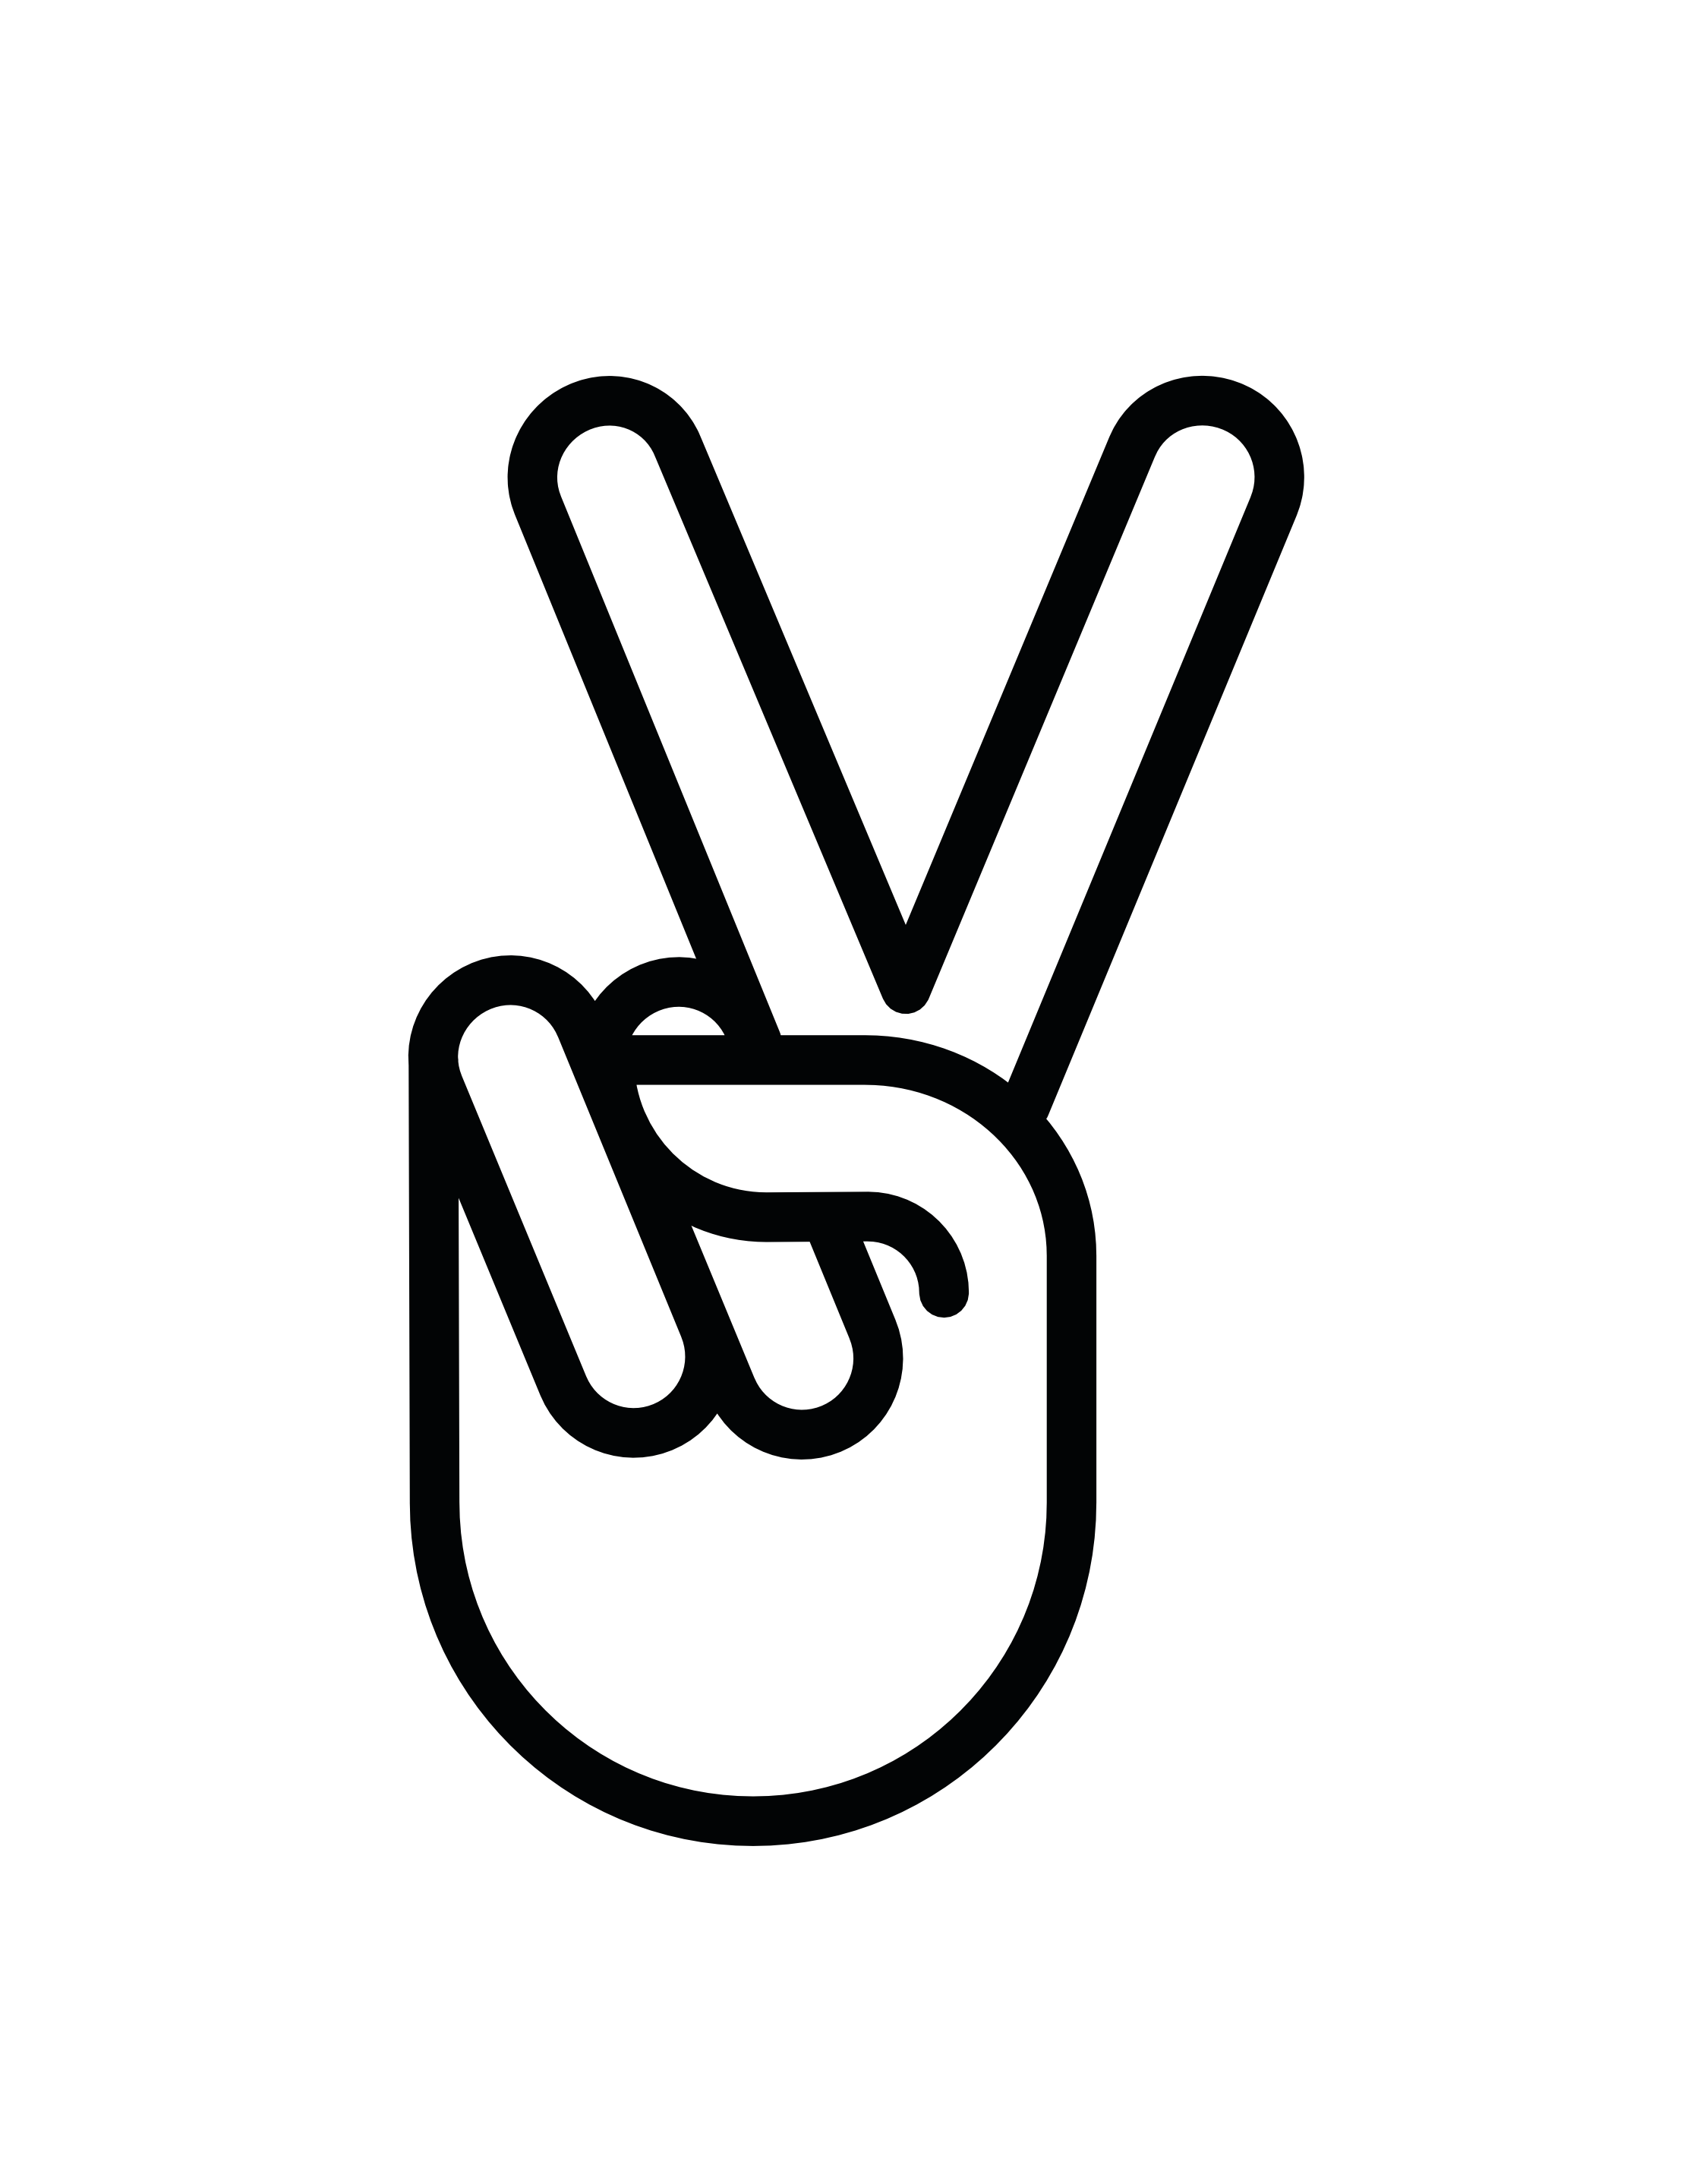 Finger Peace Sign Facebook - ClipArt Best - ClipArt Best